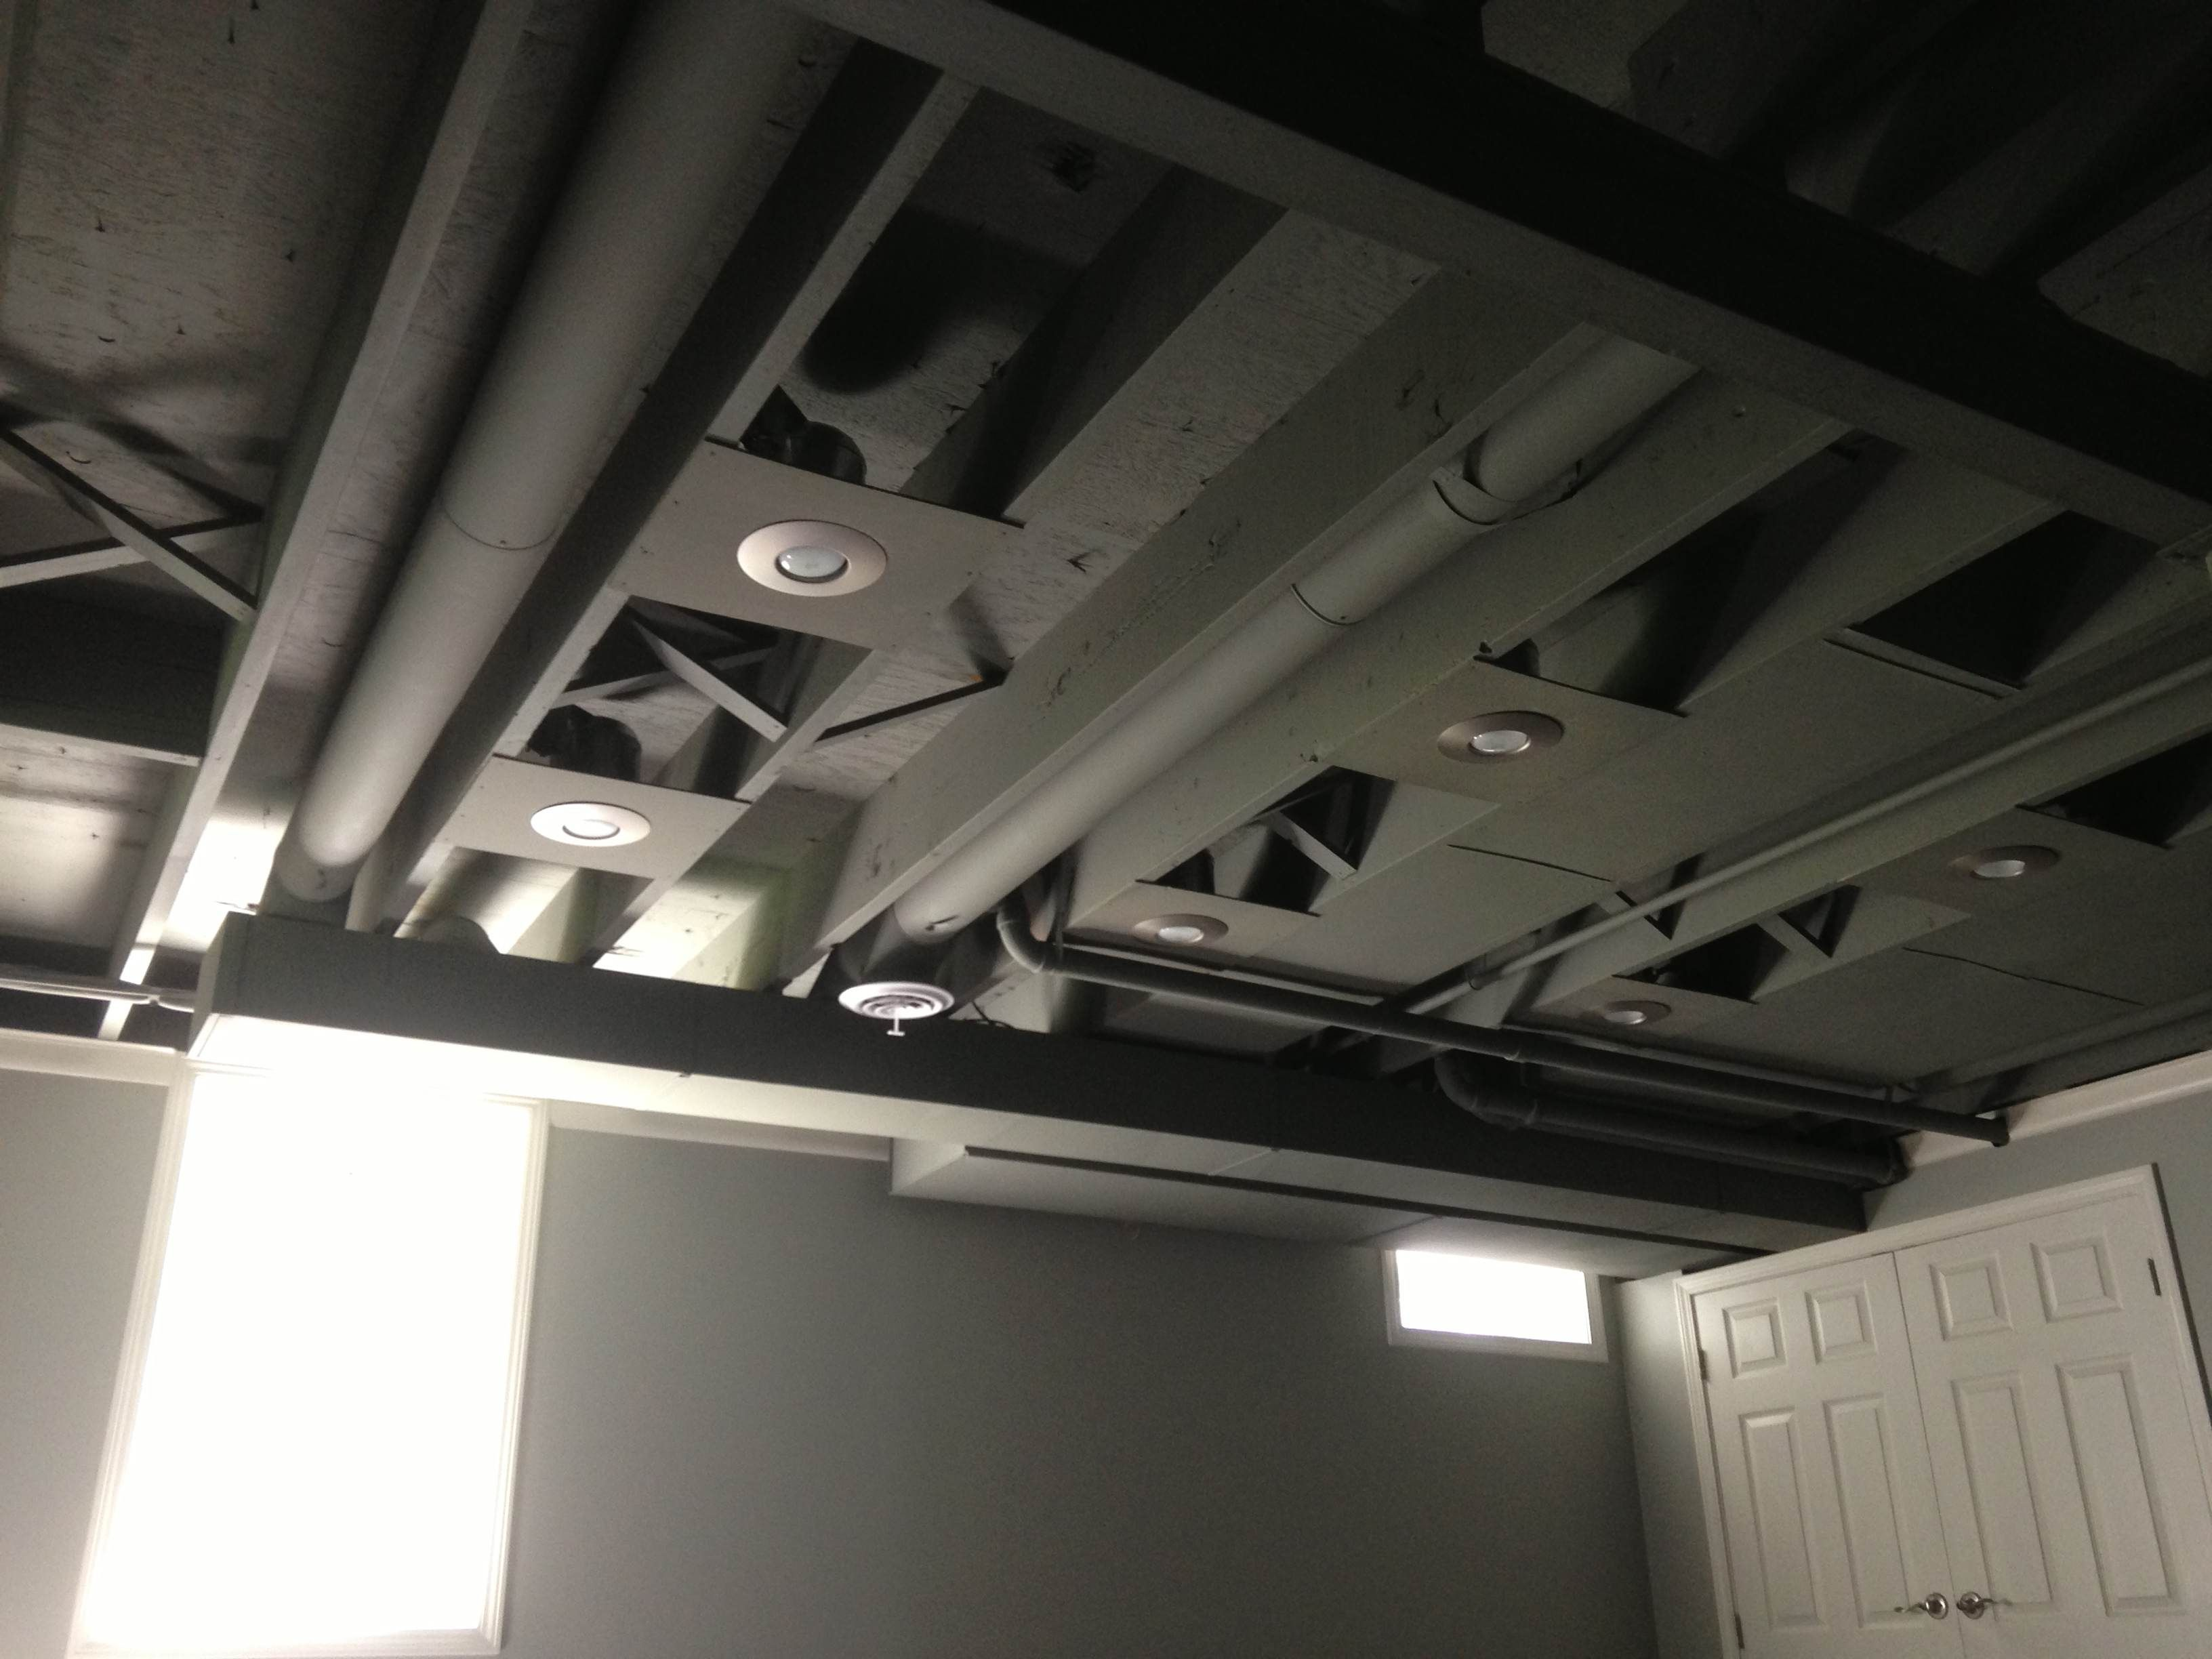 Exposed Painted Basement Ceiling Spray Painted Would Look Cool In White Or A Bright Color Basement Ceiling Painted Low Ceiling Basement Basement Lighting